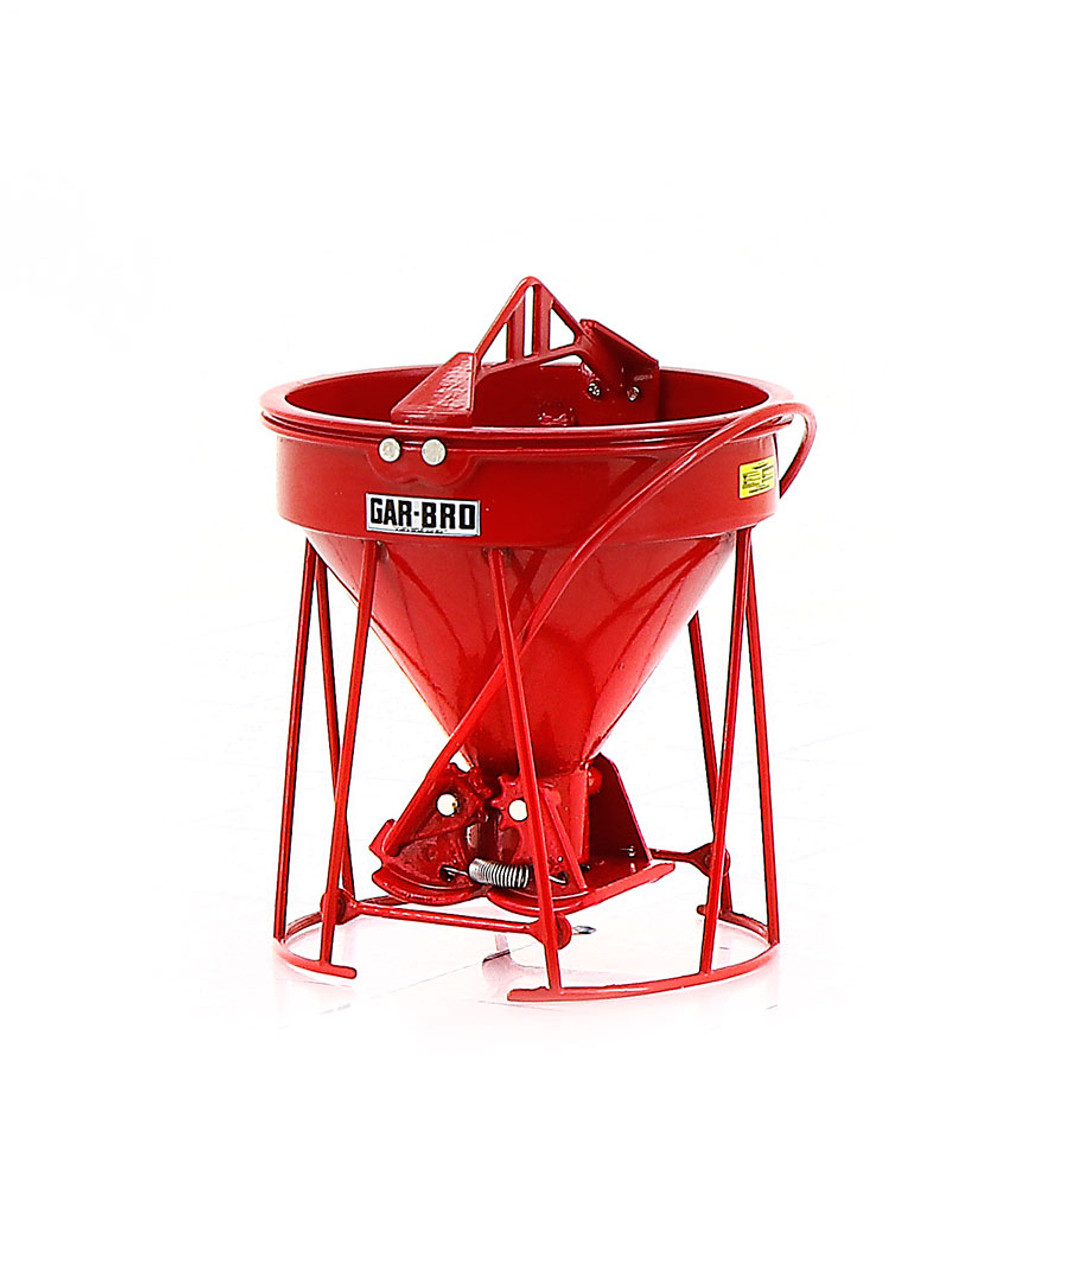 "Gar-Bro ""R"" Series Lightweight Round-Gate Concrete Bucket - Red"